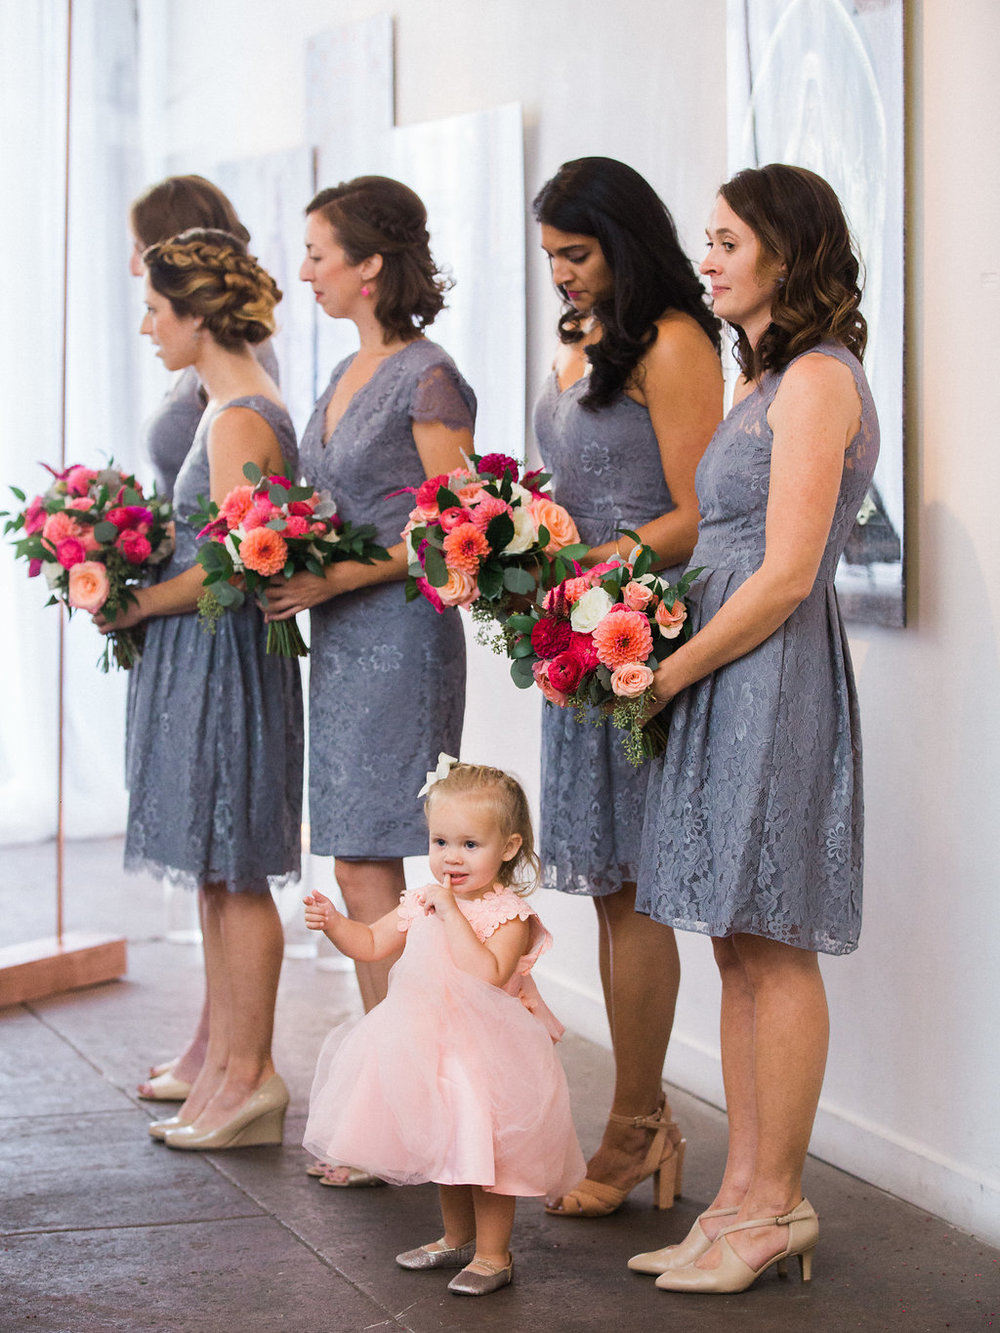 Longview Gallery Wedding Washington DC Lissa Ryan Photography Sincerely Pete Events Flower Girl